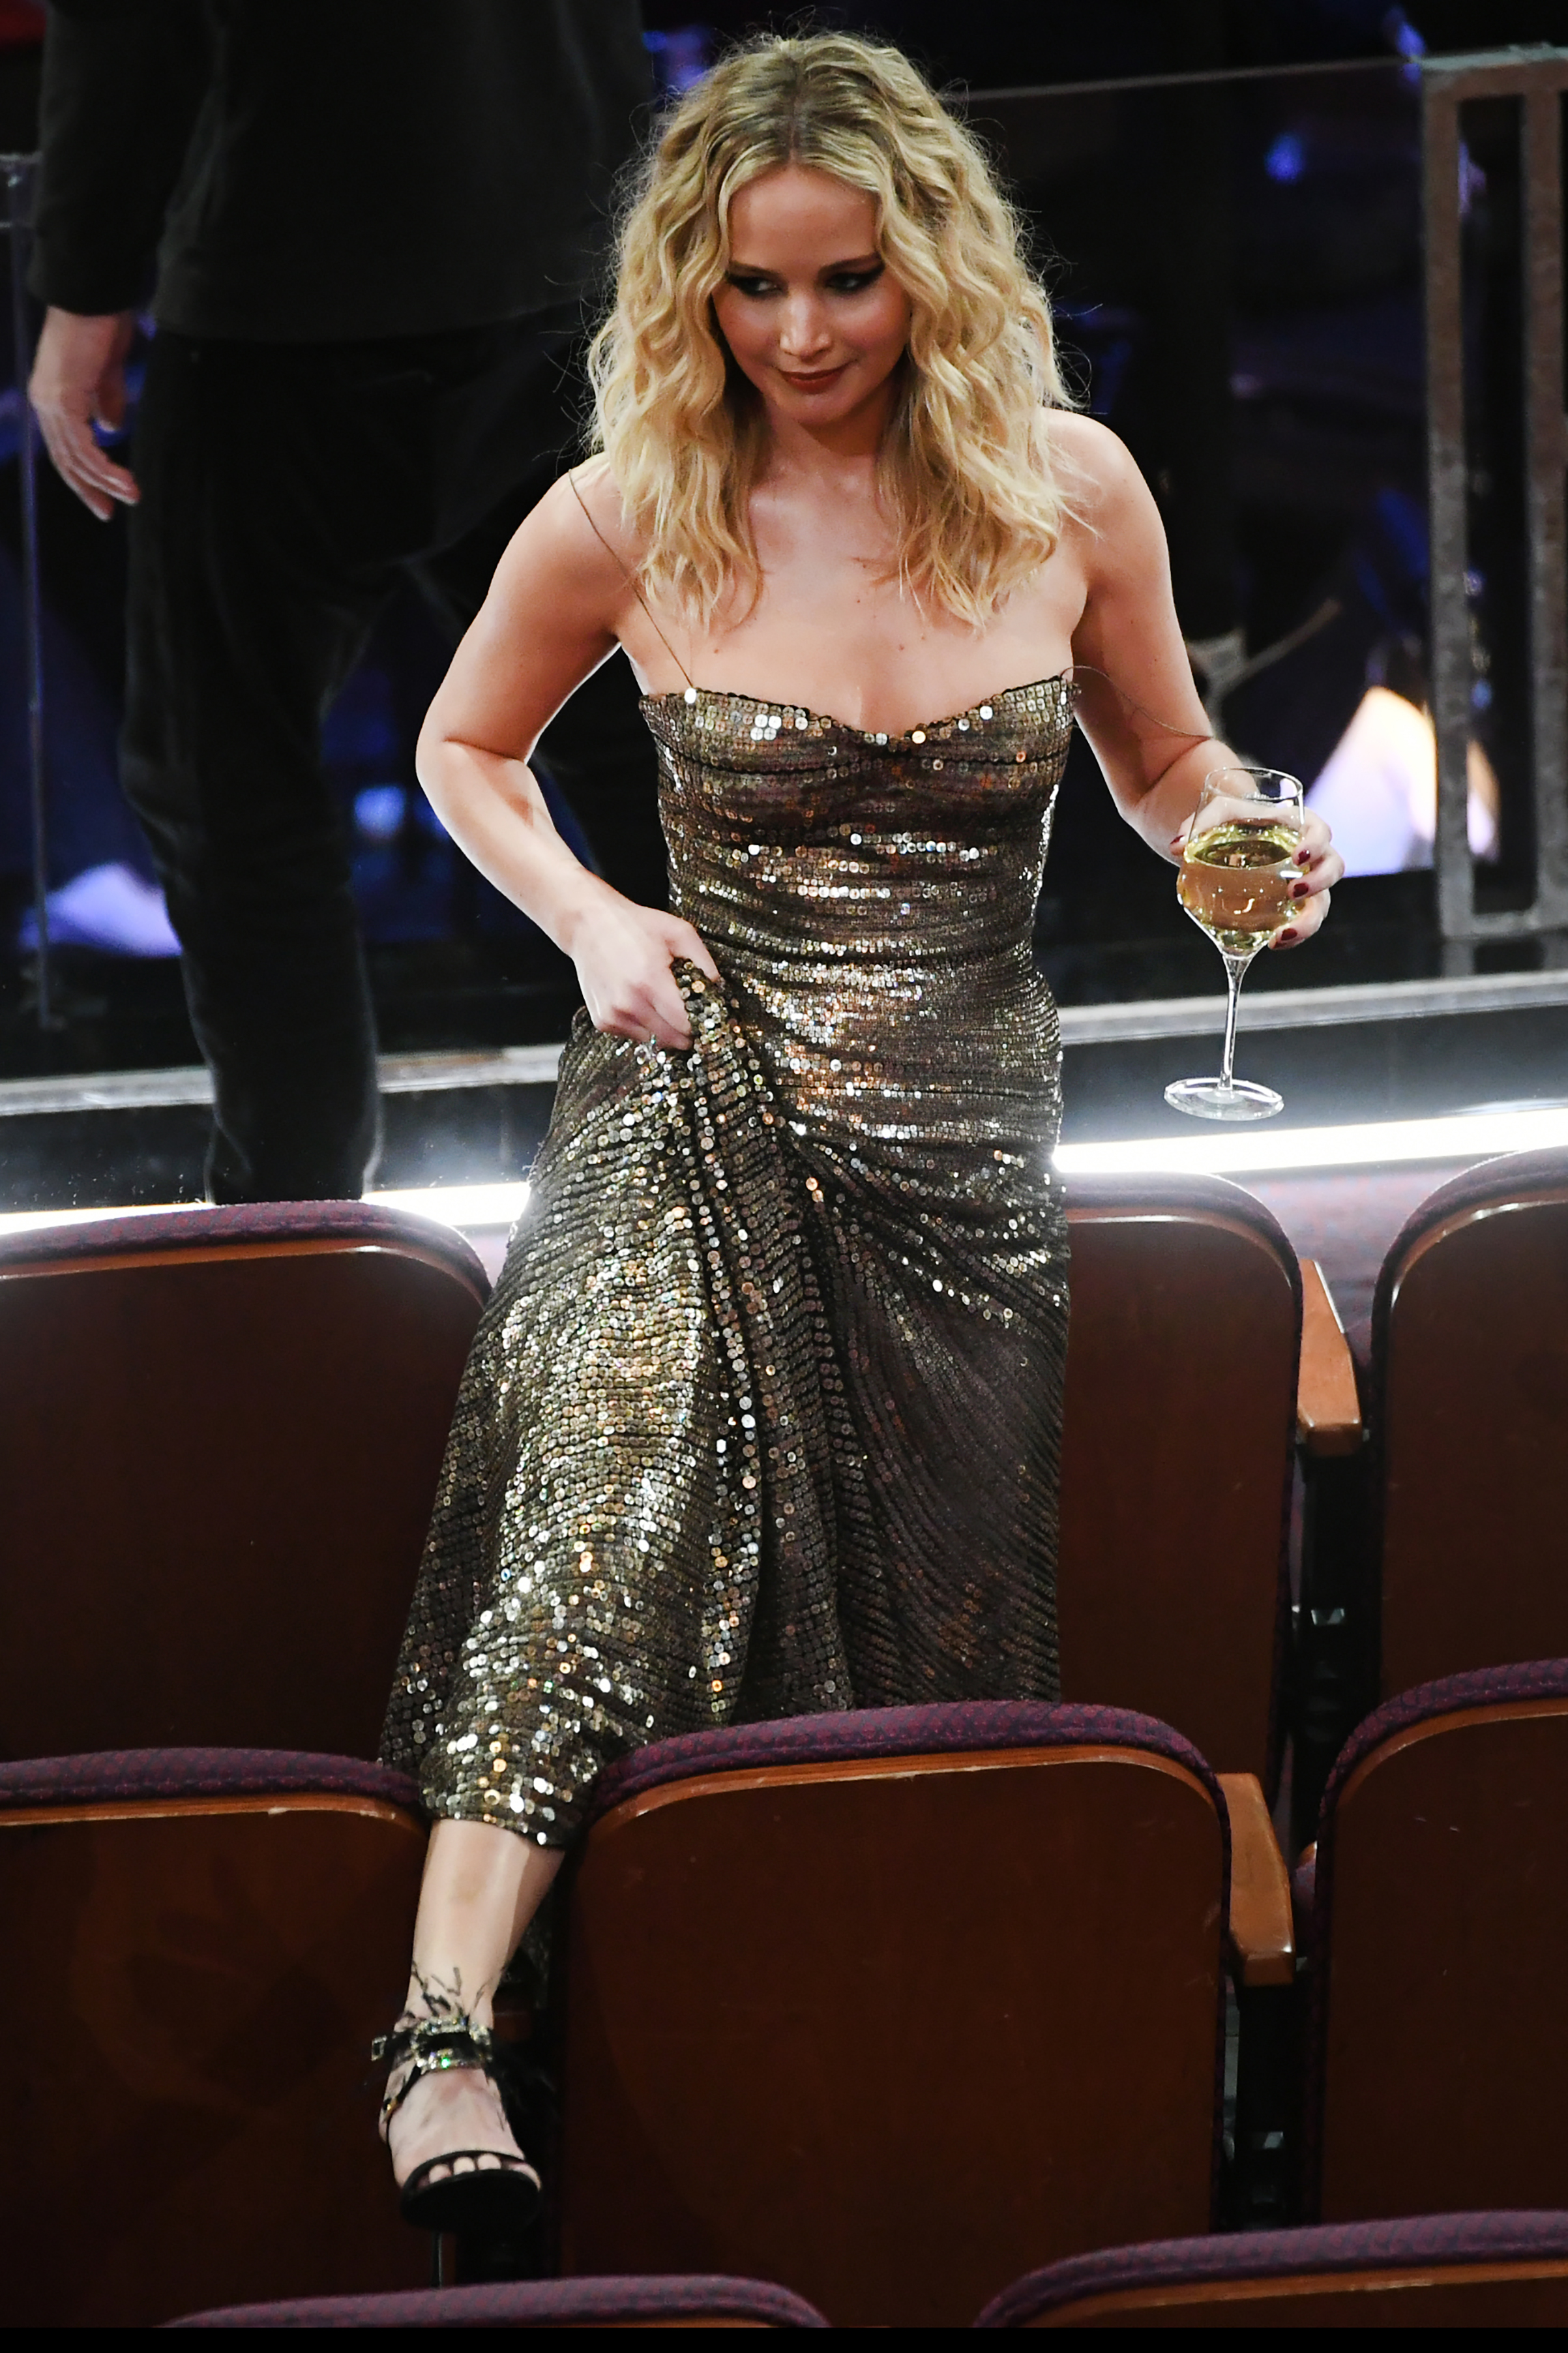 Actor Jennifer Lawrence attends the 90th Annual Academy Awards at the Dolby Theatre at Hollywood & Highland Center on March 4, 2018 in Hollywood.